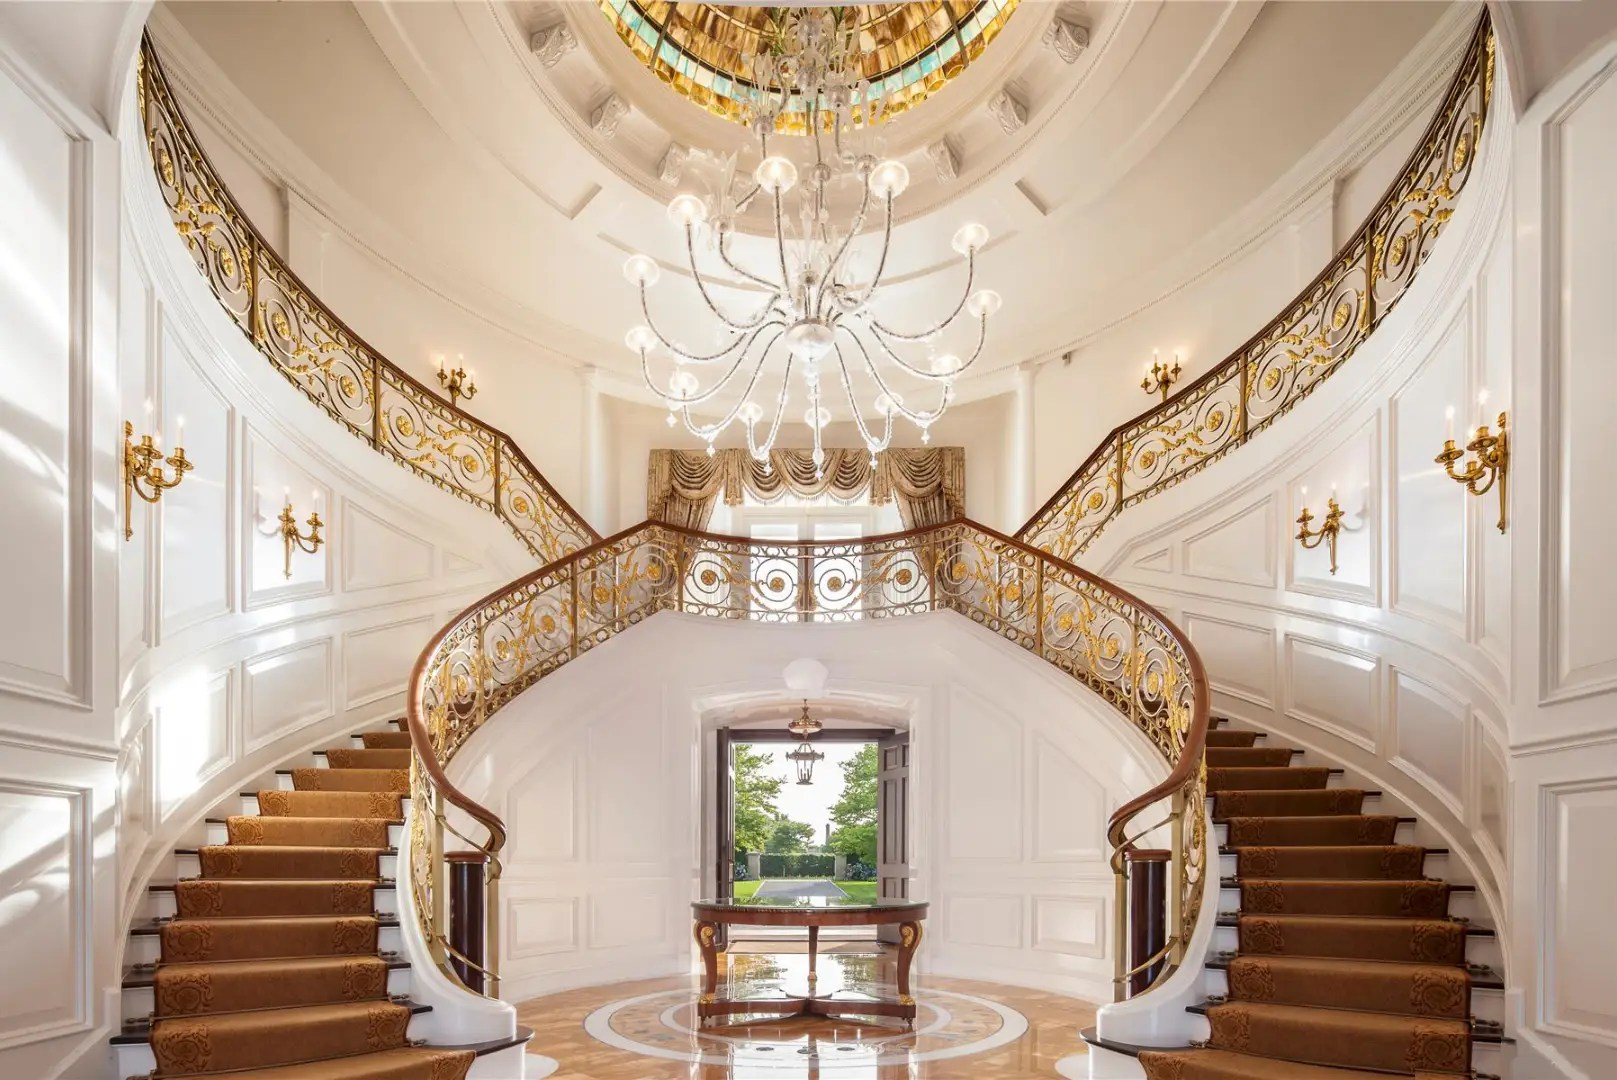 Inside, the grand staircase makes quite the impression.